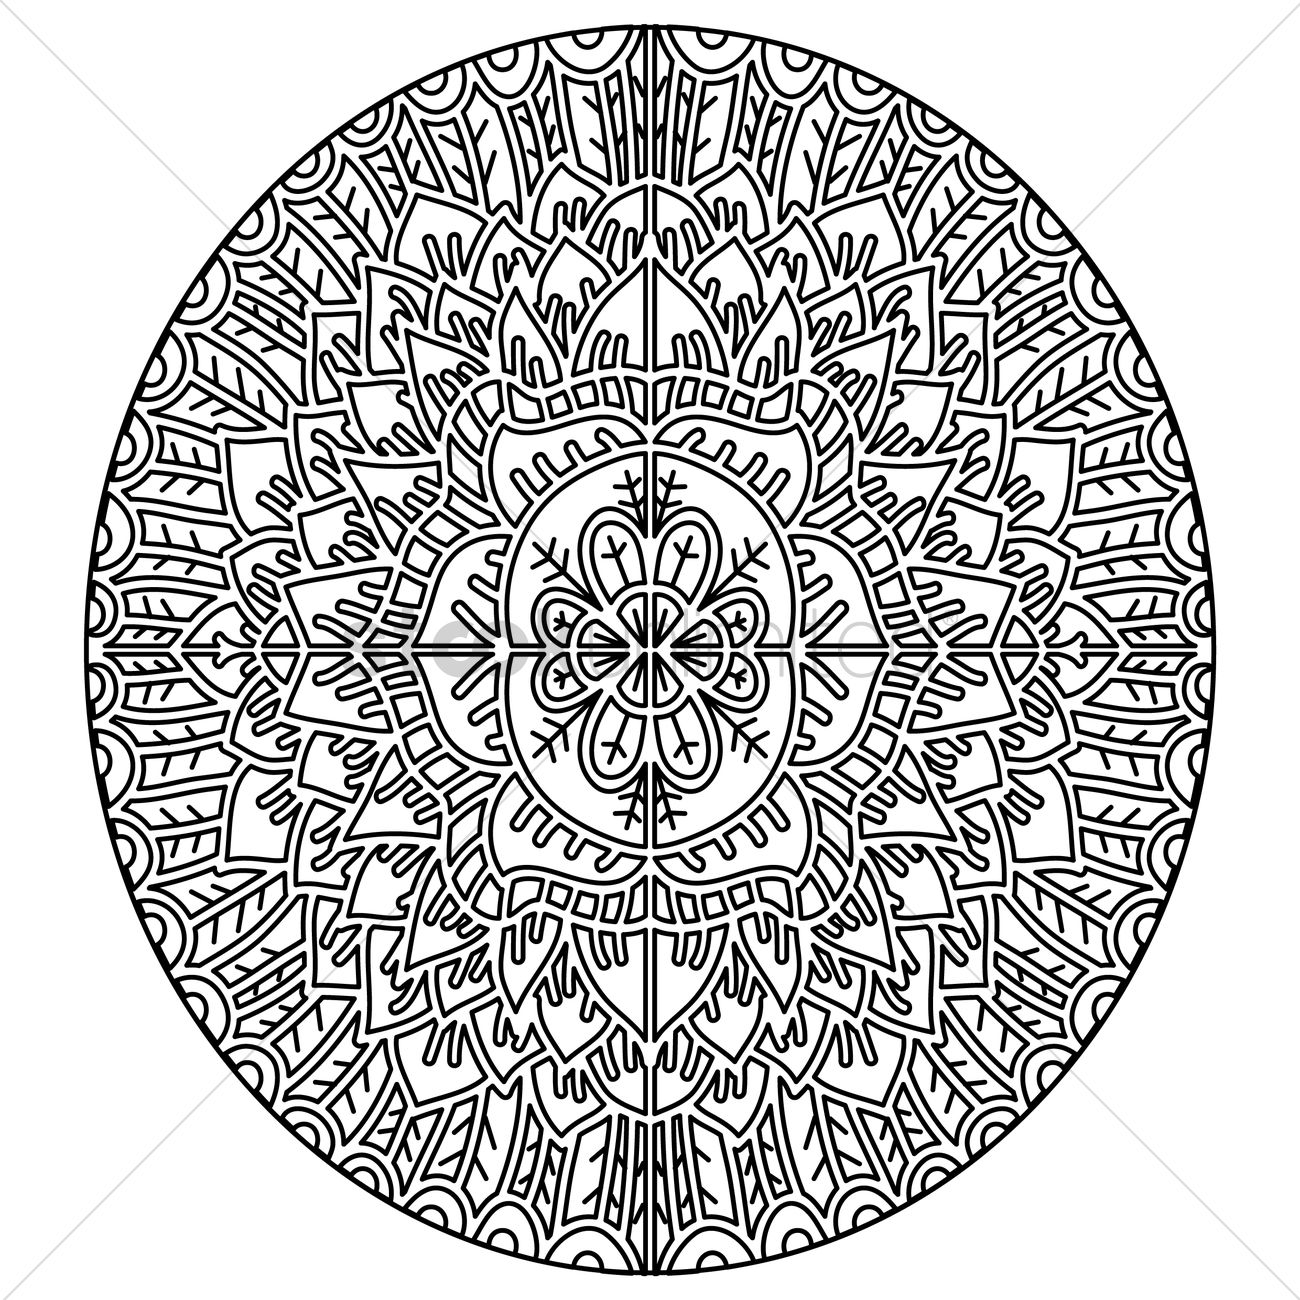 Uncategorized Intricate Pattern abstract intricate pattern design vector image 1959754 graphic